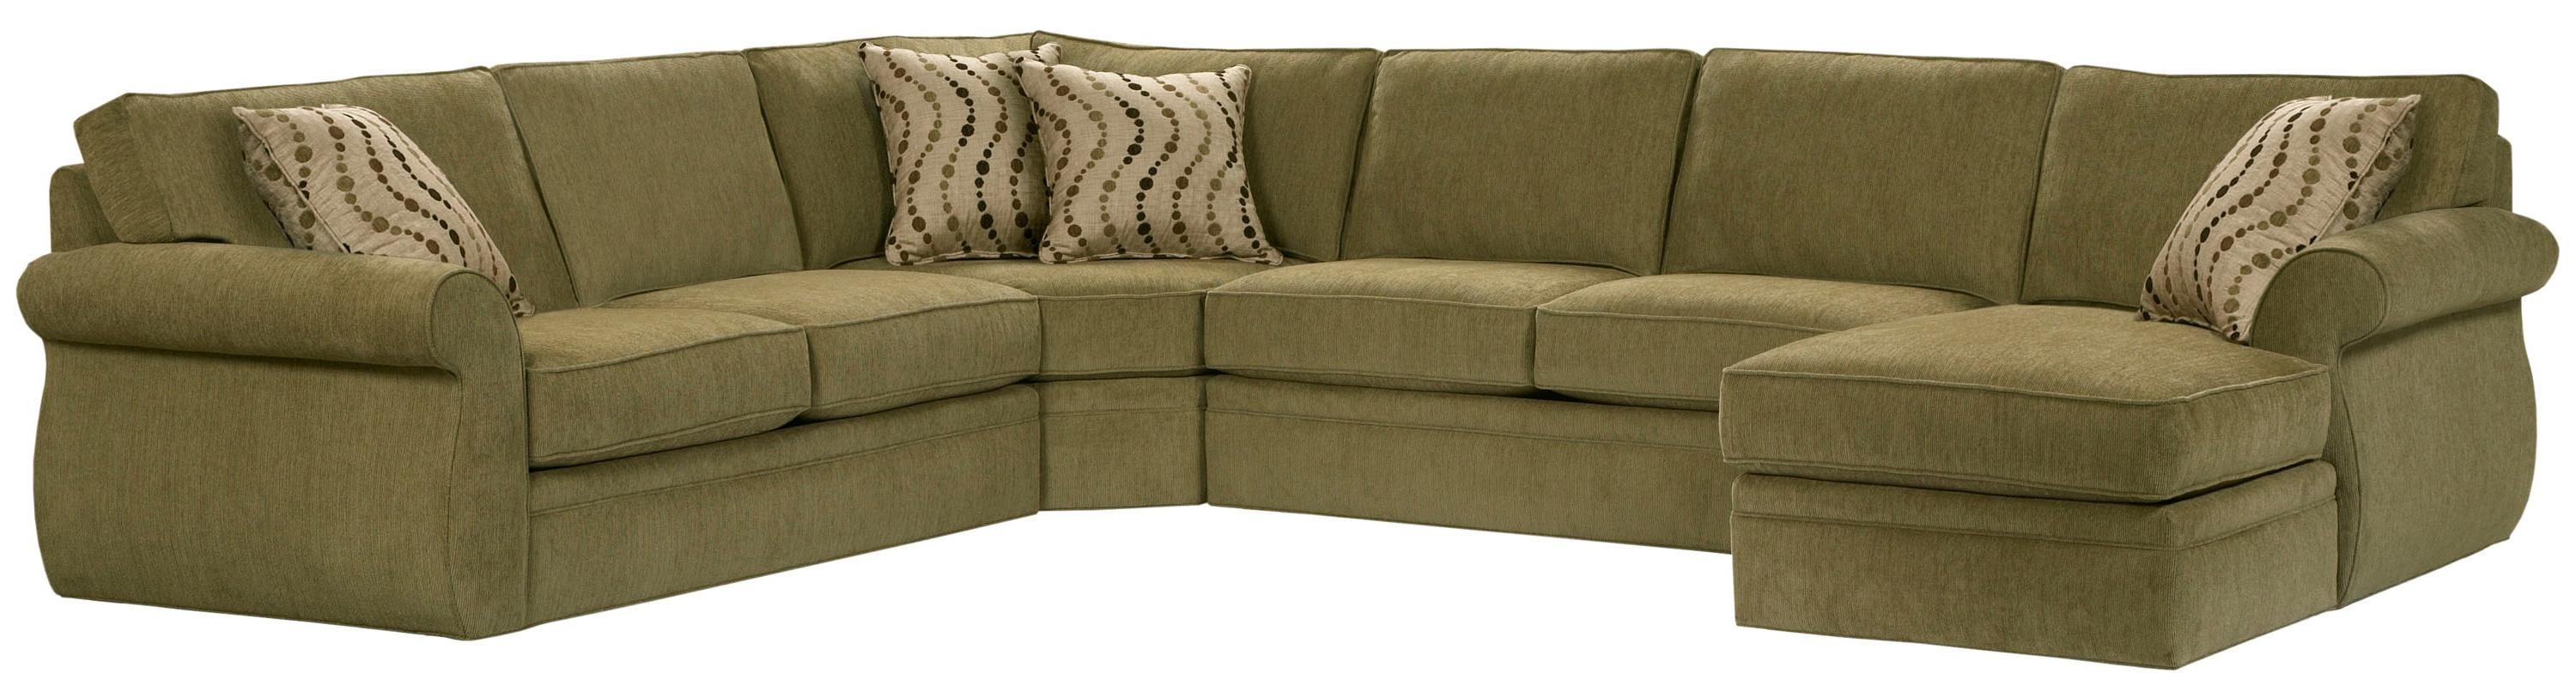 Broyhill Furniture Veronica Right Arm Facing Customizable Chaise Intended For Broyhill Sectional Sofas (Image 8 of 15)